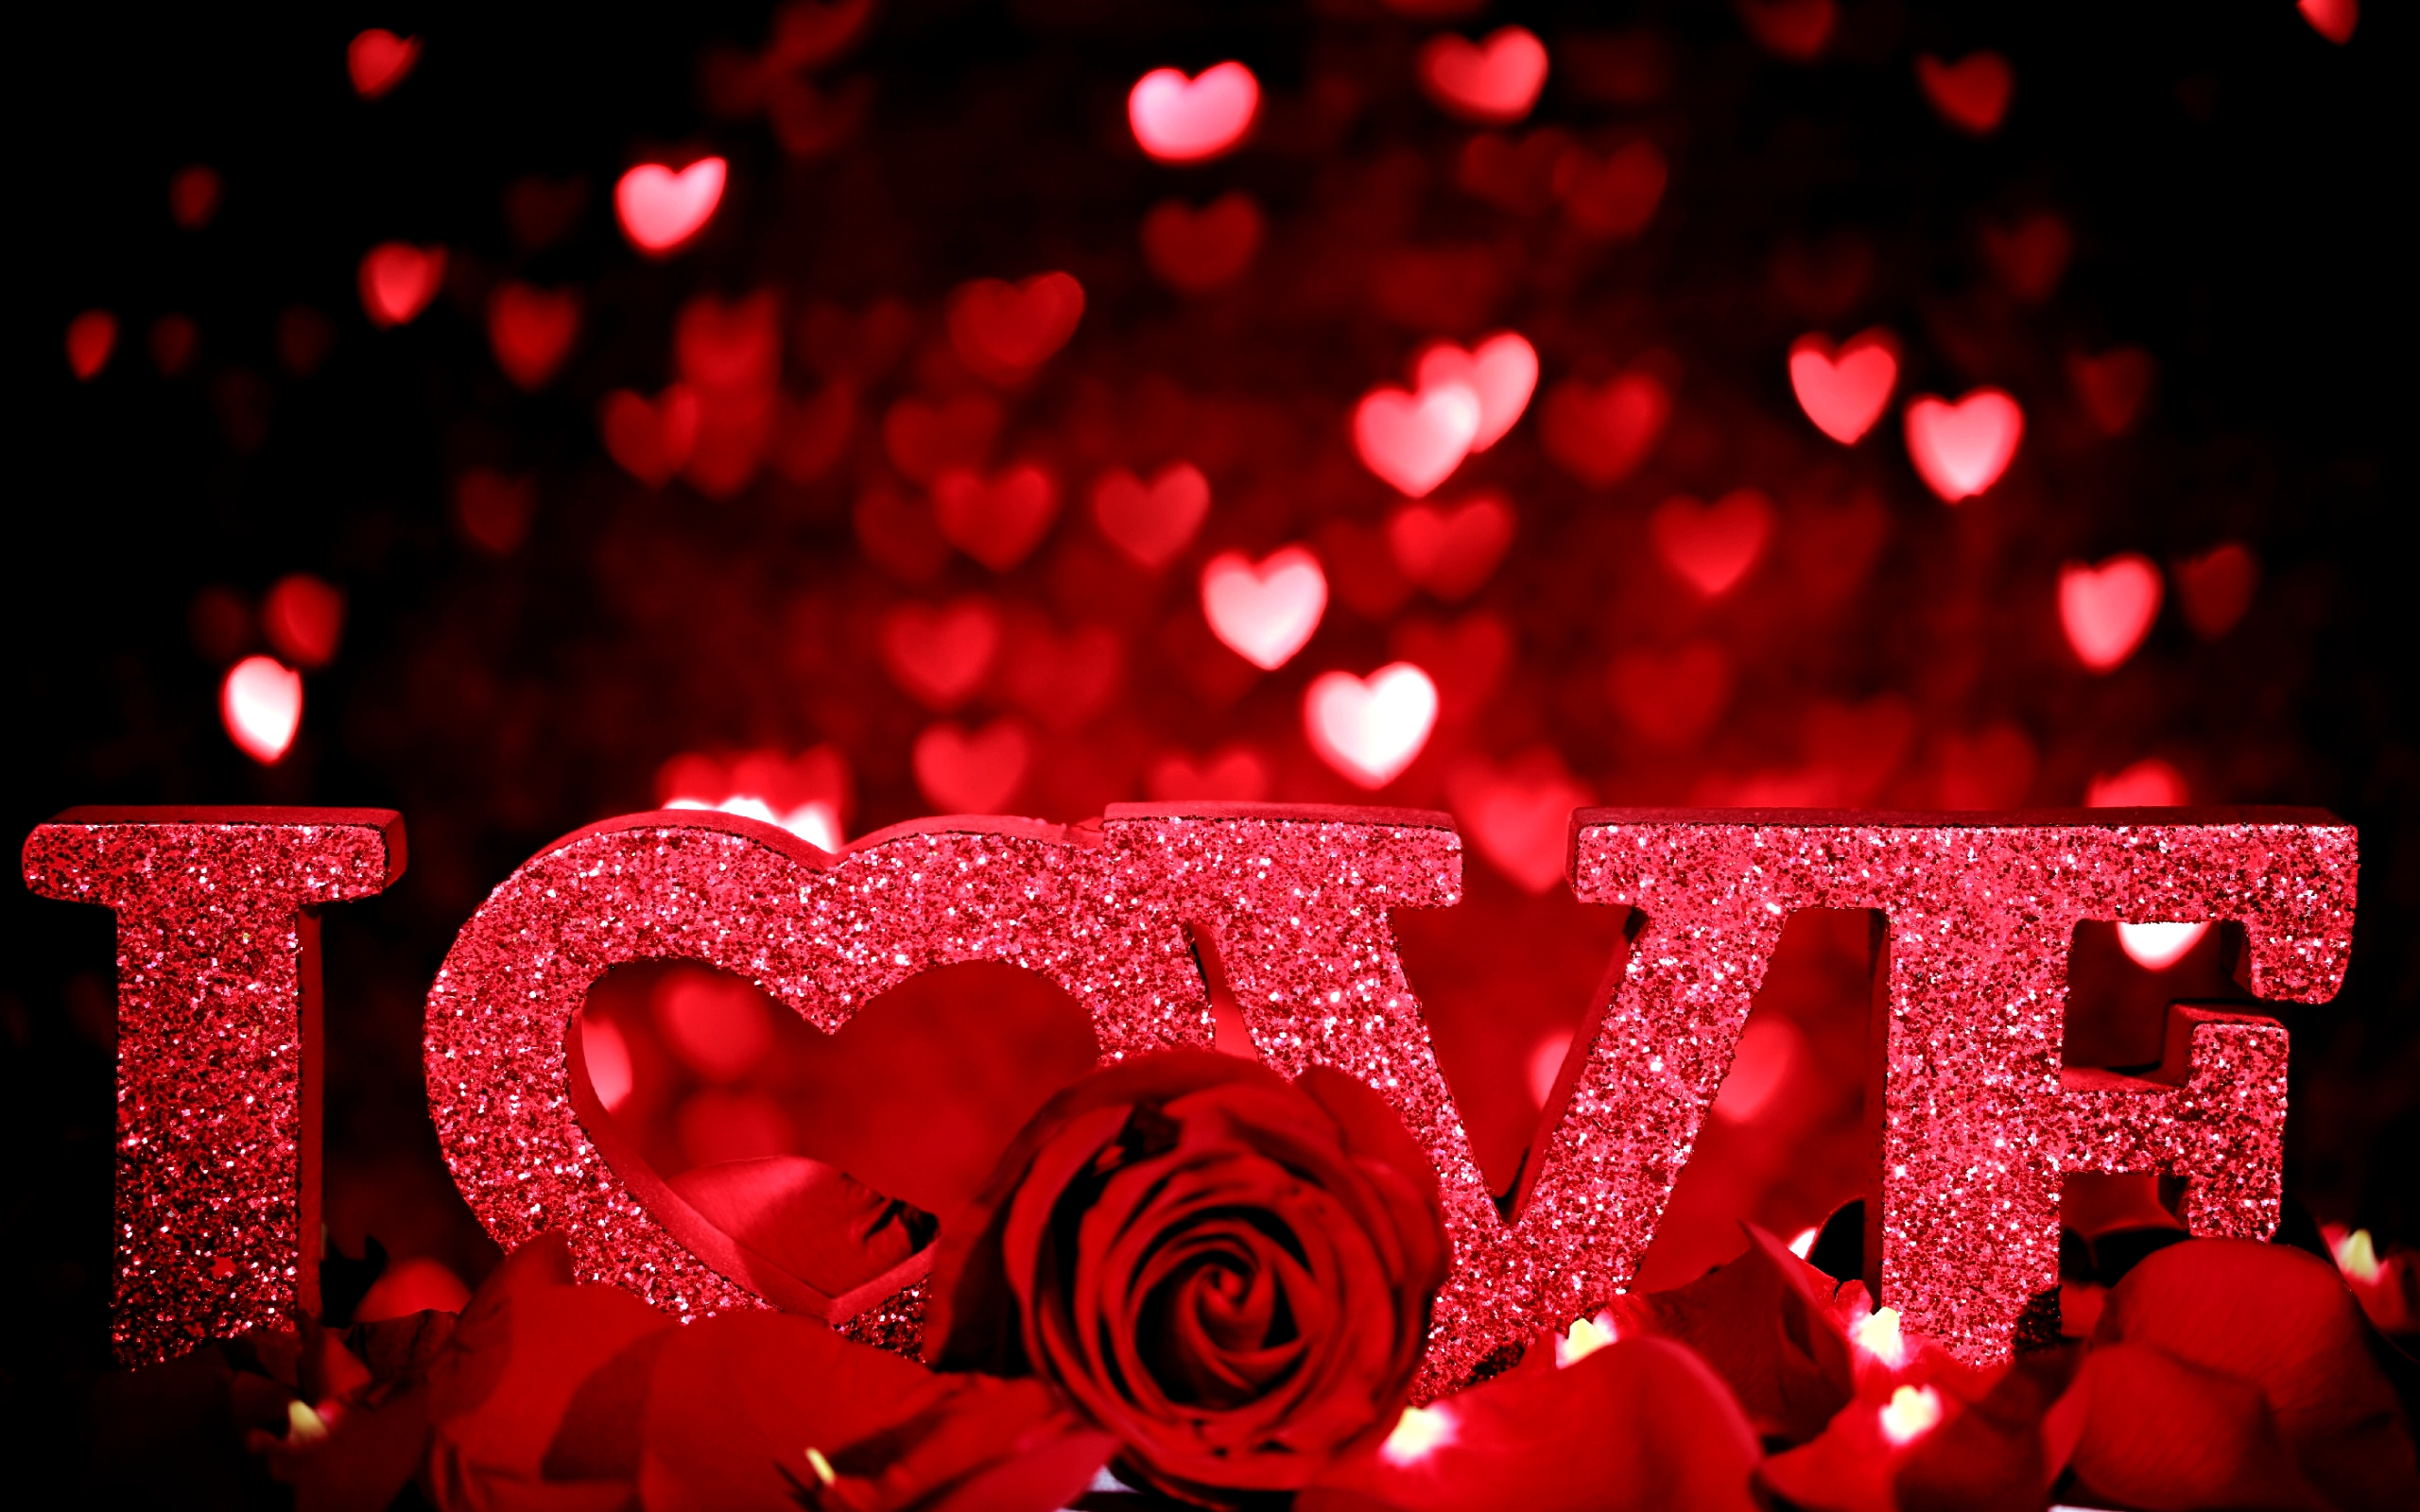 Lovelove wallpapers download